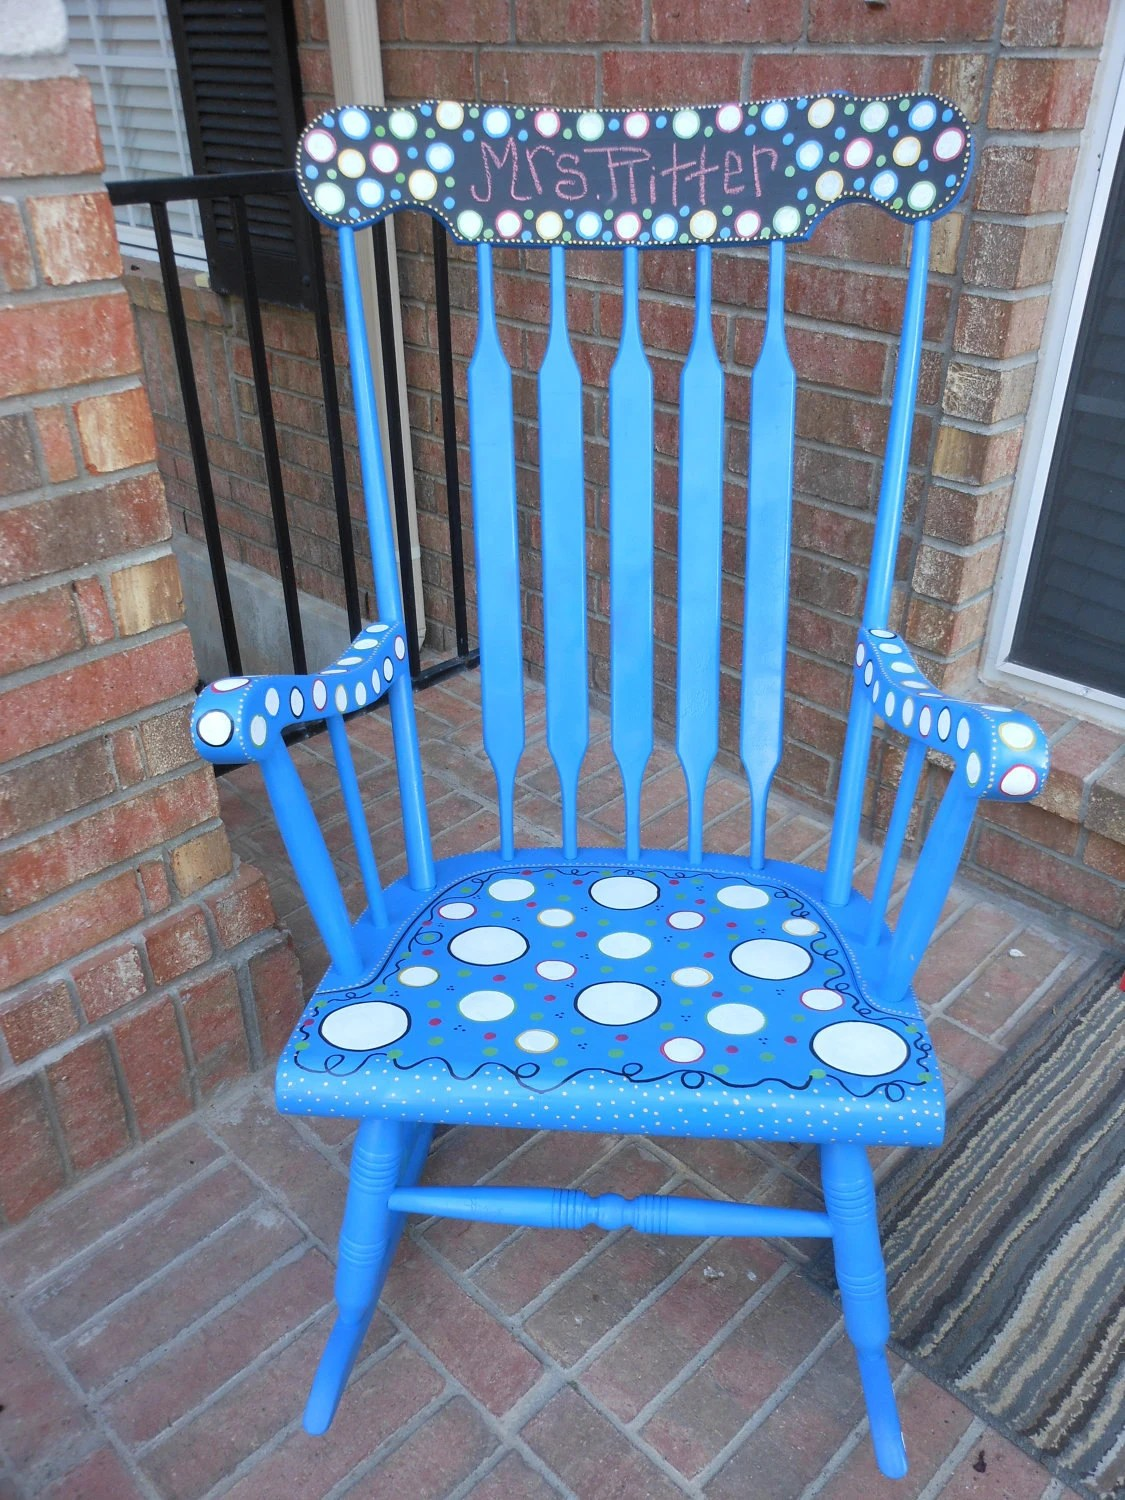 Teacher Chair Rocking Chair Antique And Painted Custom By Mrsstjohnsartcamp